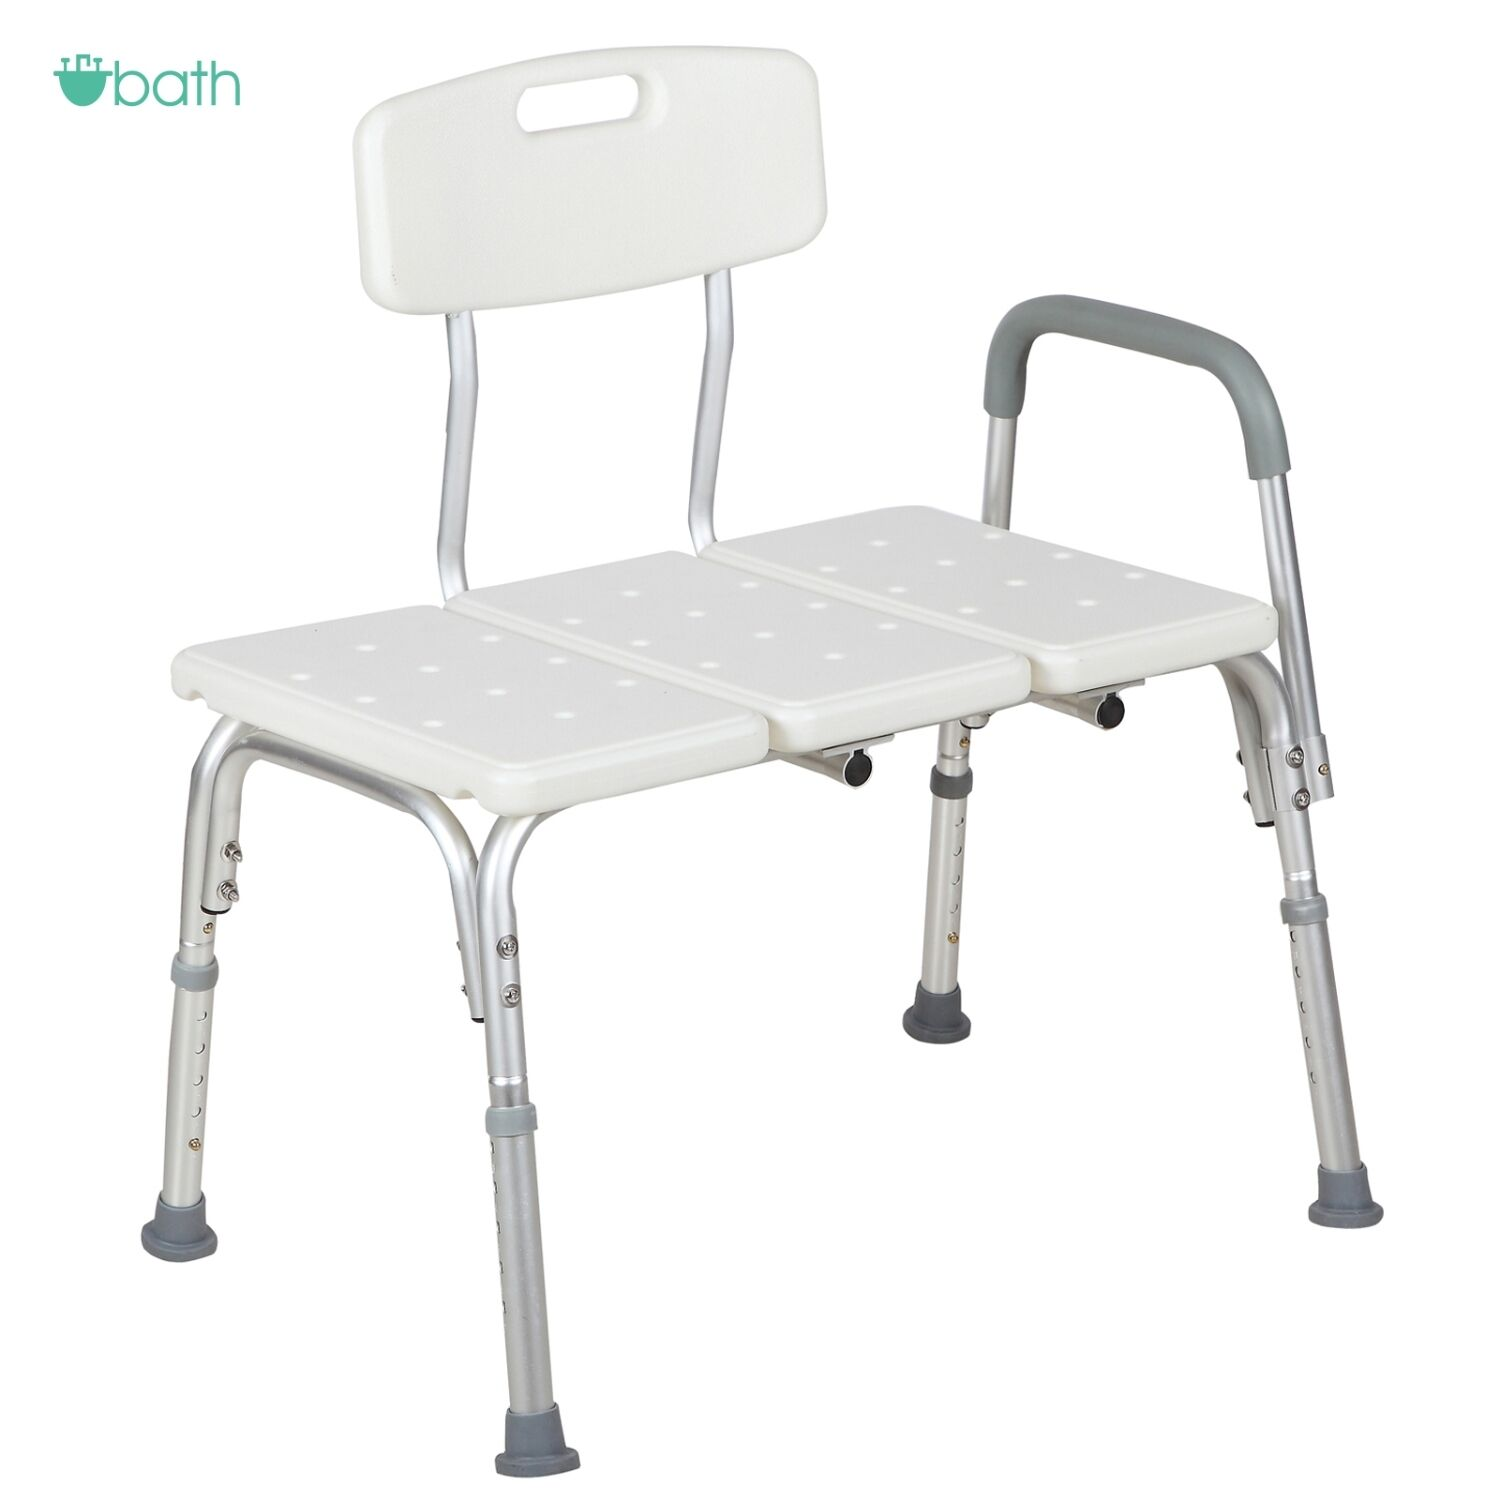 Shower Chair 10 Height Adjustable Bath Tub Bench Stool Seat Back and ...